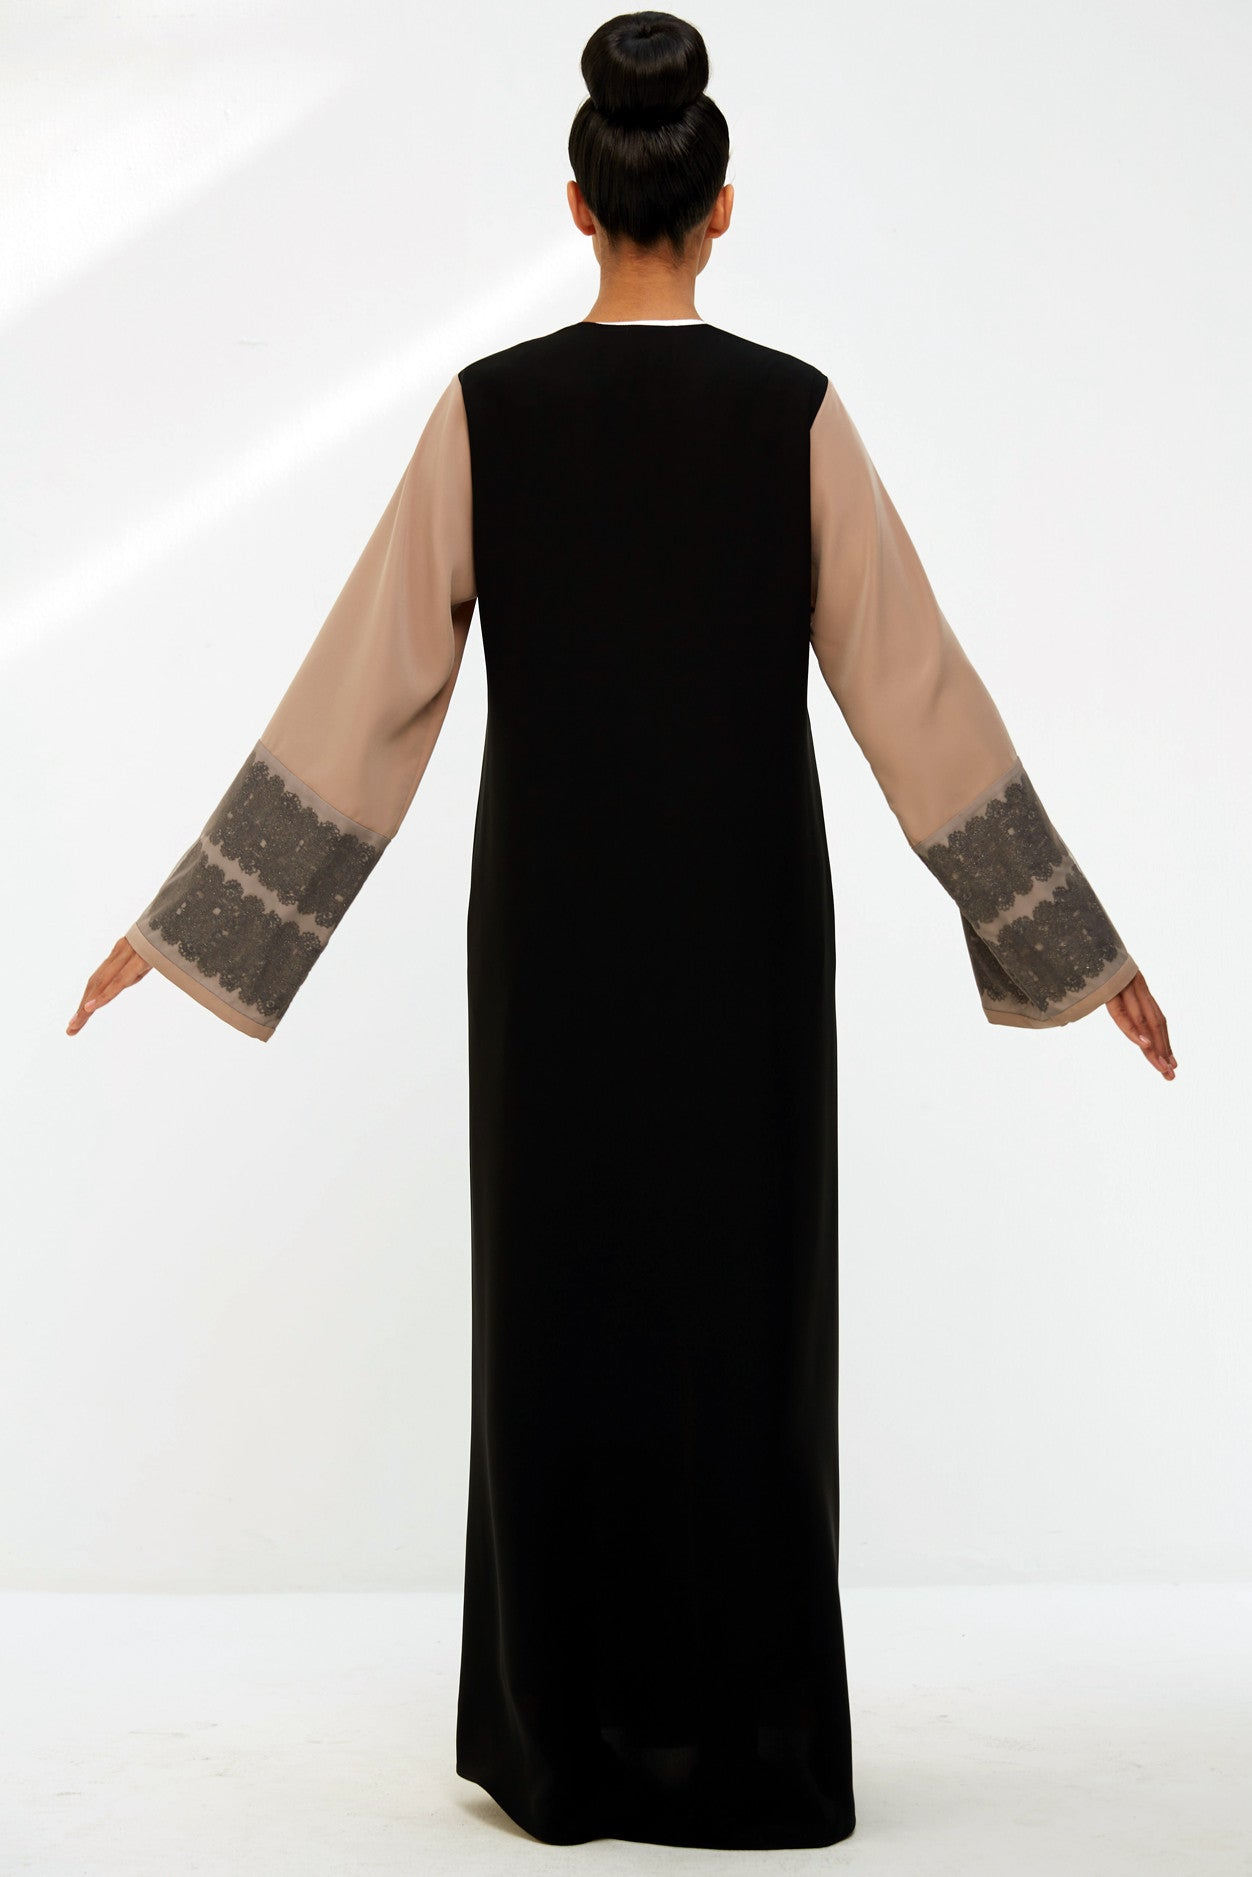 JULIETTE - ACR1909Z - Arabesque classic cut abaya with multiple lines  of graphic lace on front body and sleeves.